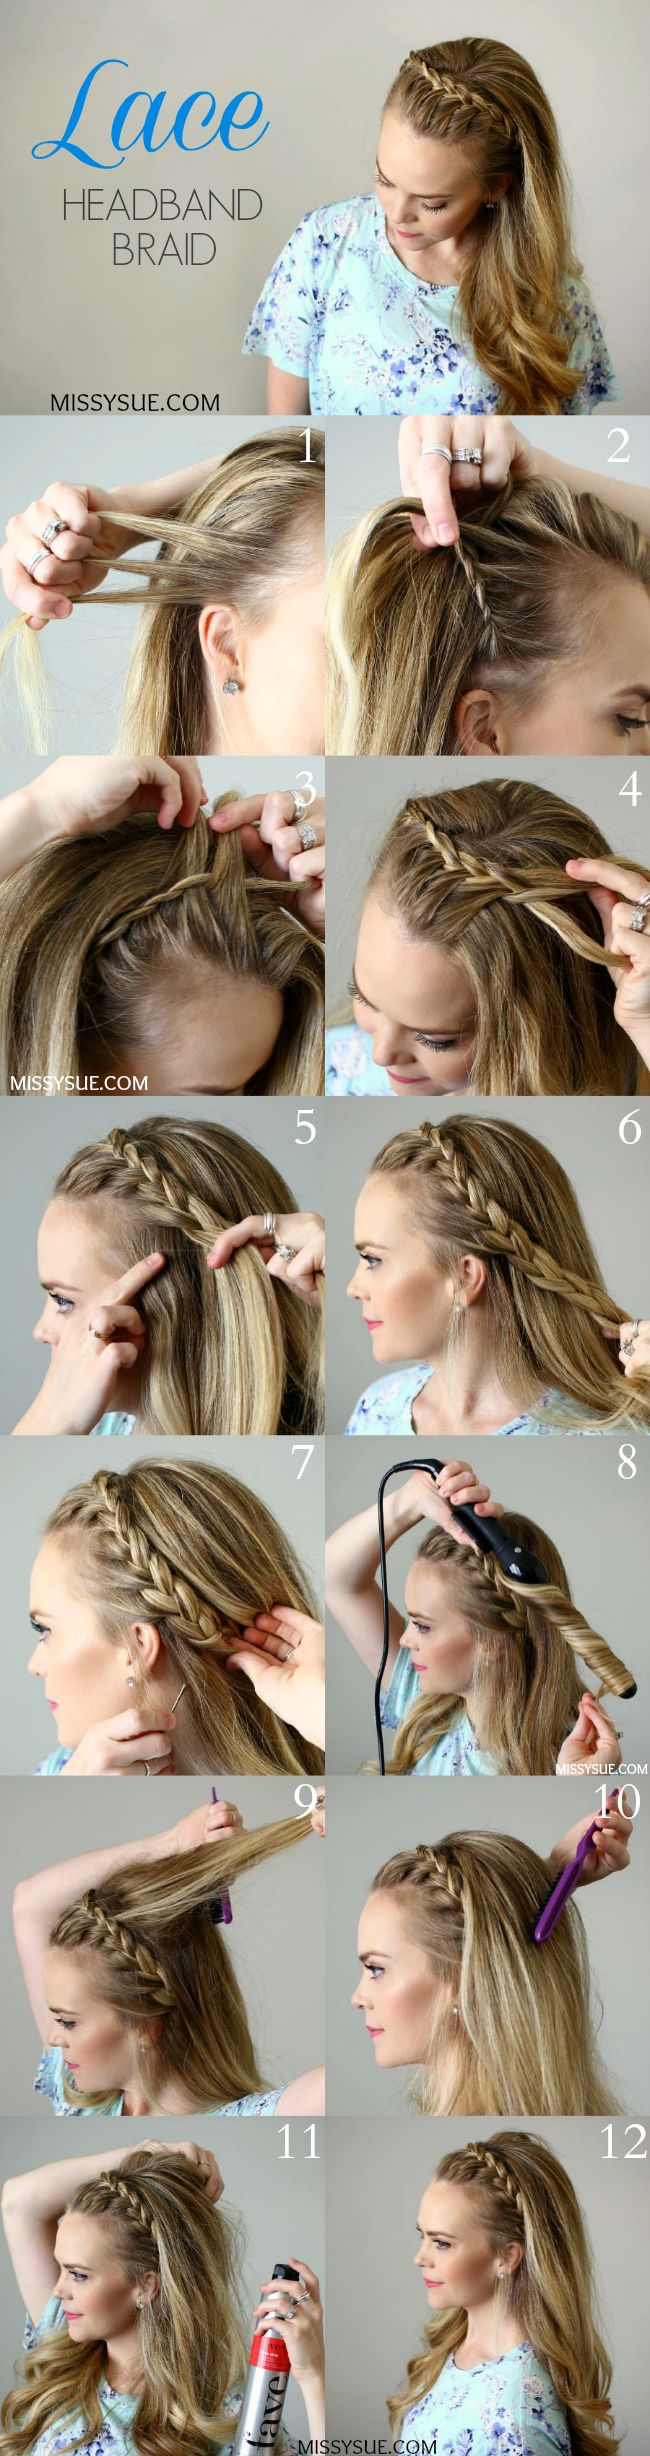 Lace Headband Braid Separate Hair Into Two Parts: First Two Inches At  Forehead From Ear